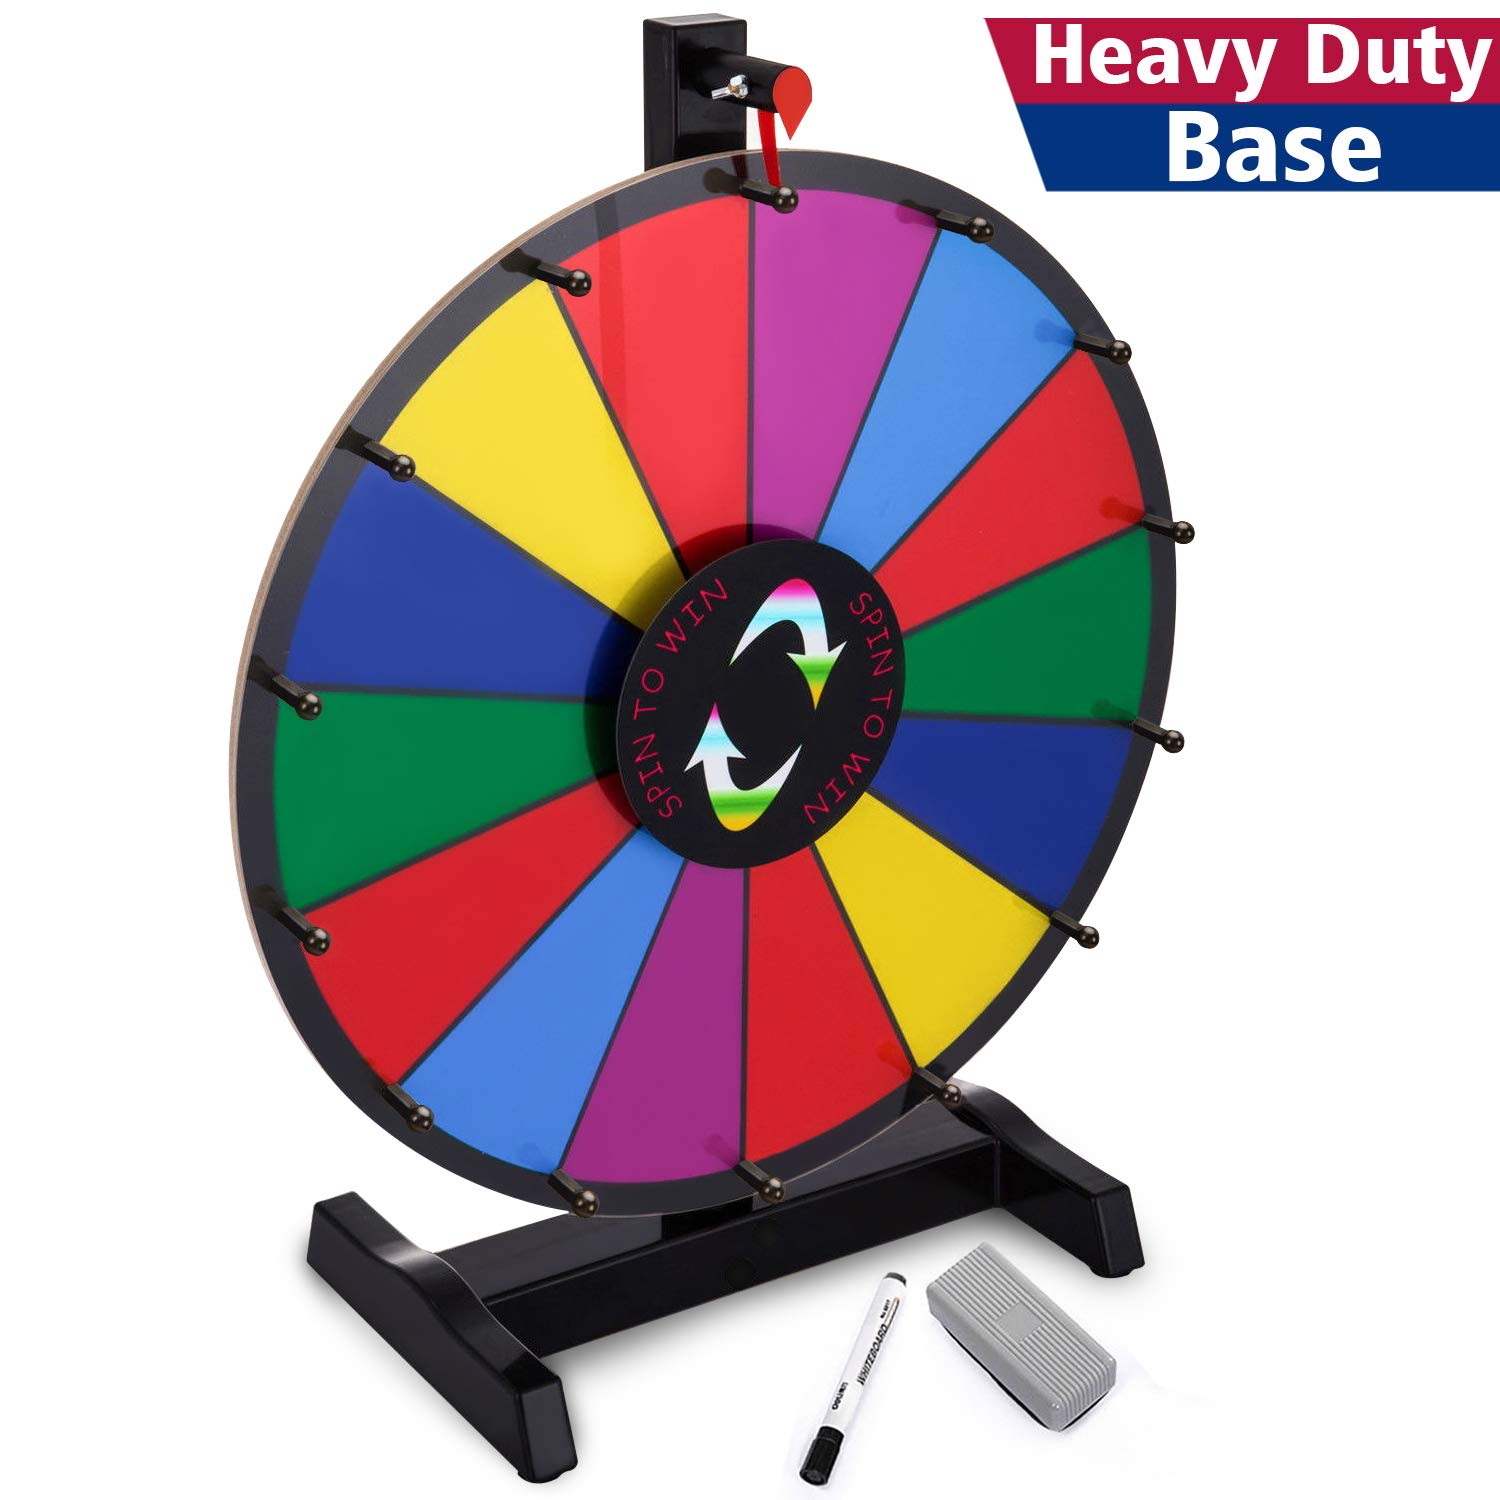 T-SIGN 18'' Heavy Duty Tabletop Spinning Prize Wheel, 14 Slots ColorPrize Wheel Spinnerwith Dry Erase Marker & Eraser As Customized Gifts for Carnival and Trade Show, Win The Fortune Spin Game